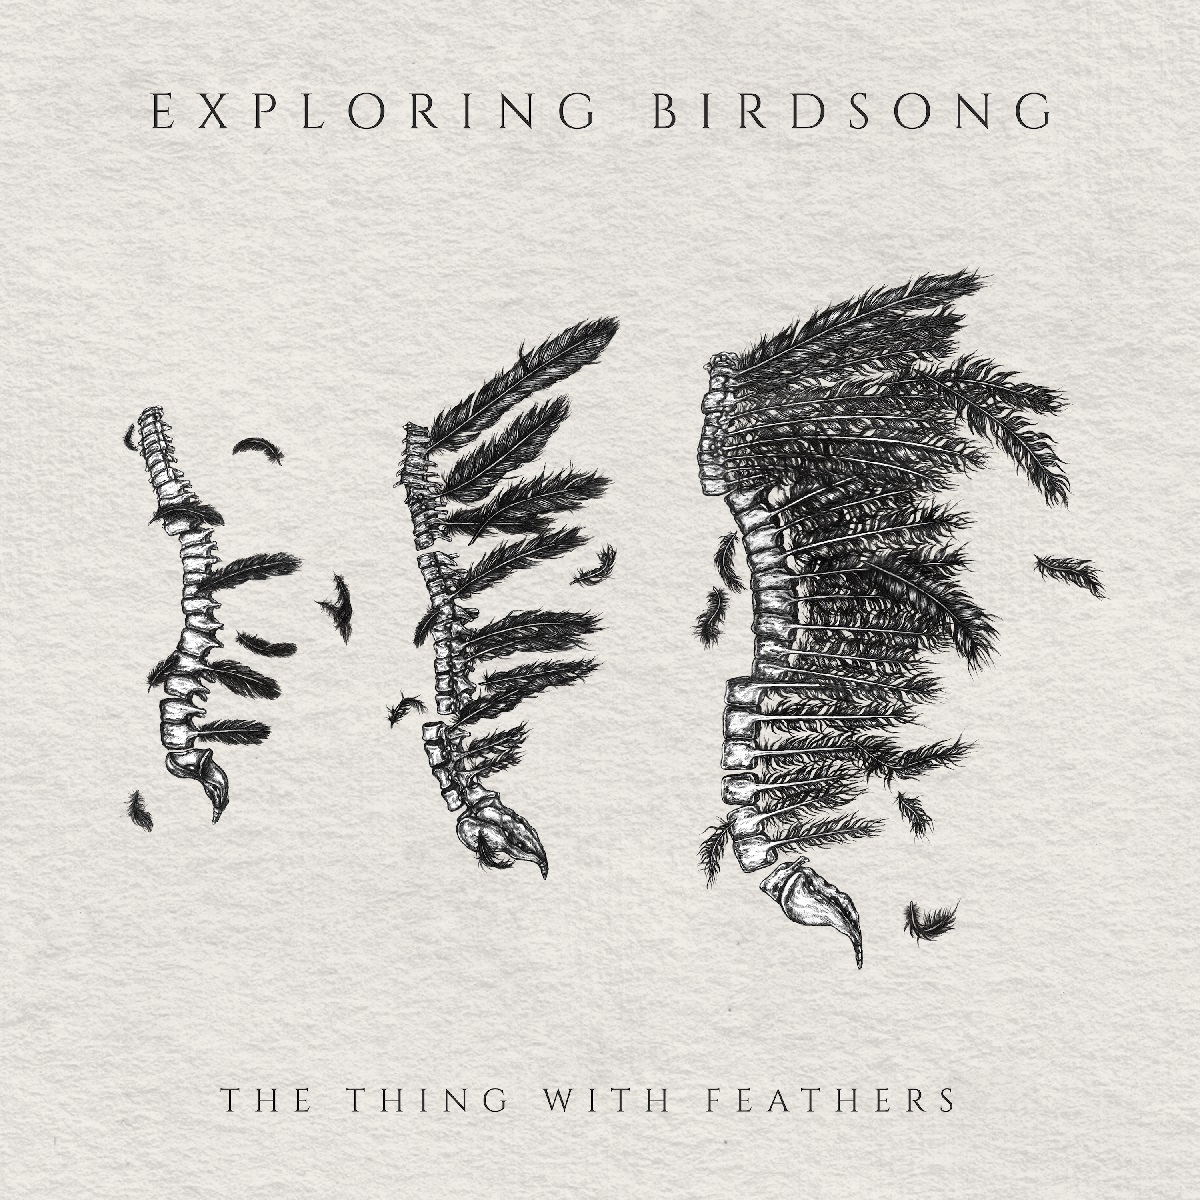 Exploring Birdsong - The Thing With Feathers EP_FINALresize.jpg